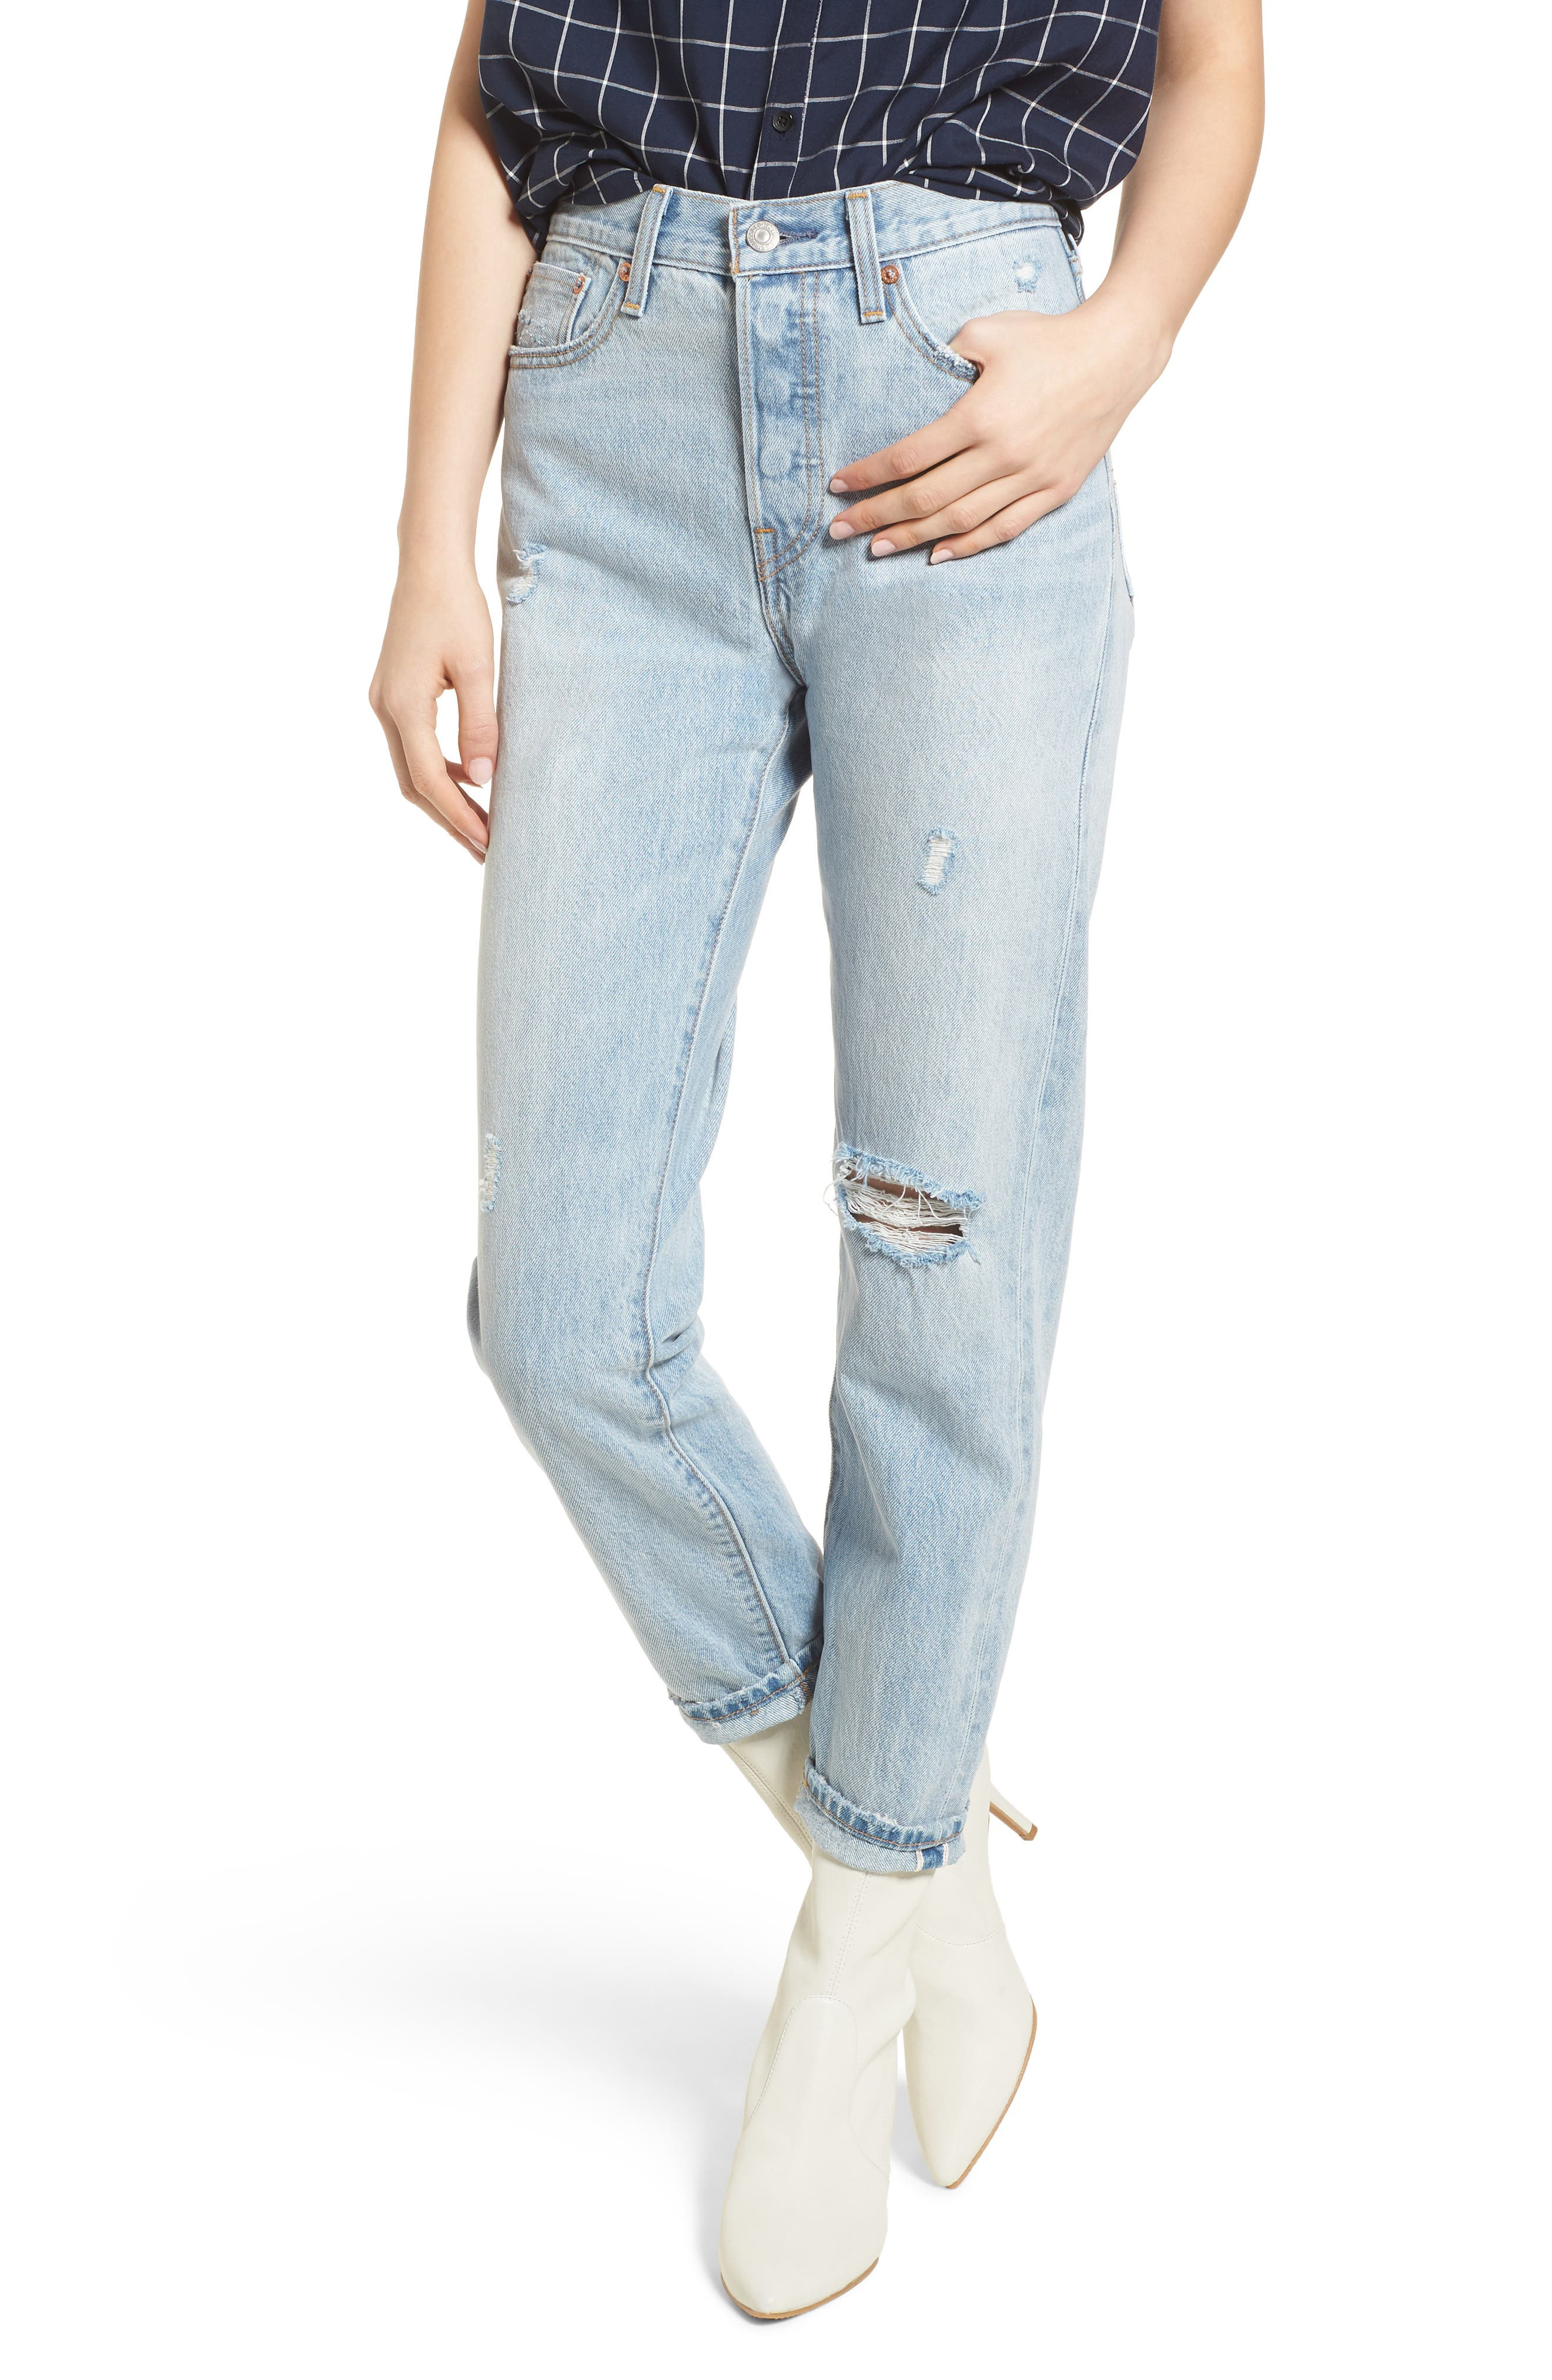 Wedgie Icon Fit Ripped High Waist Ankle Jeans in Desert Delta